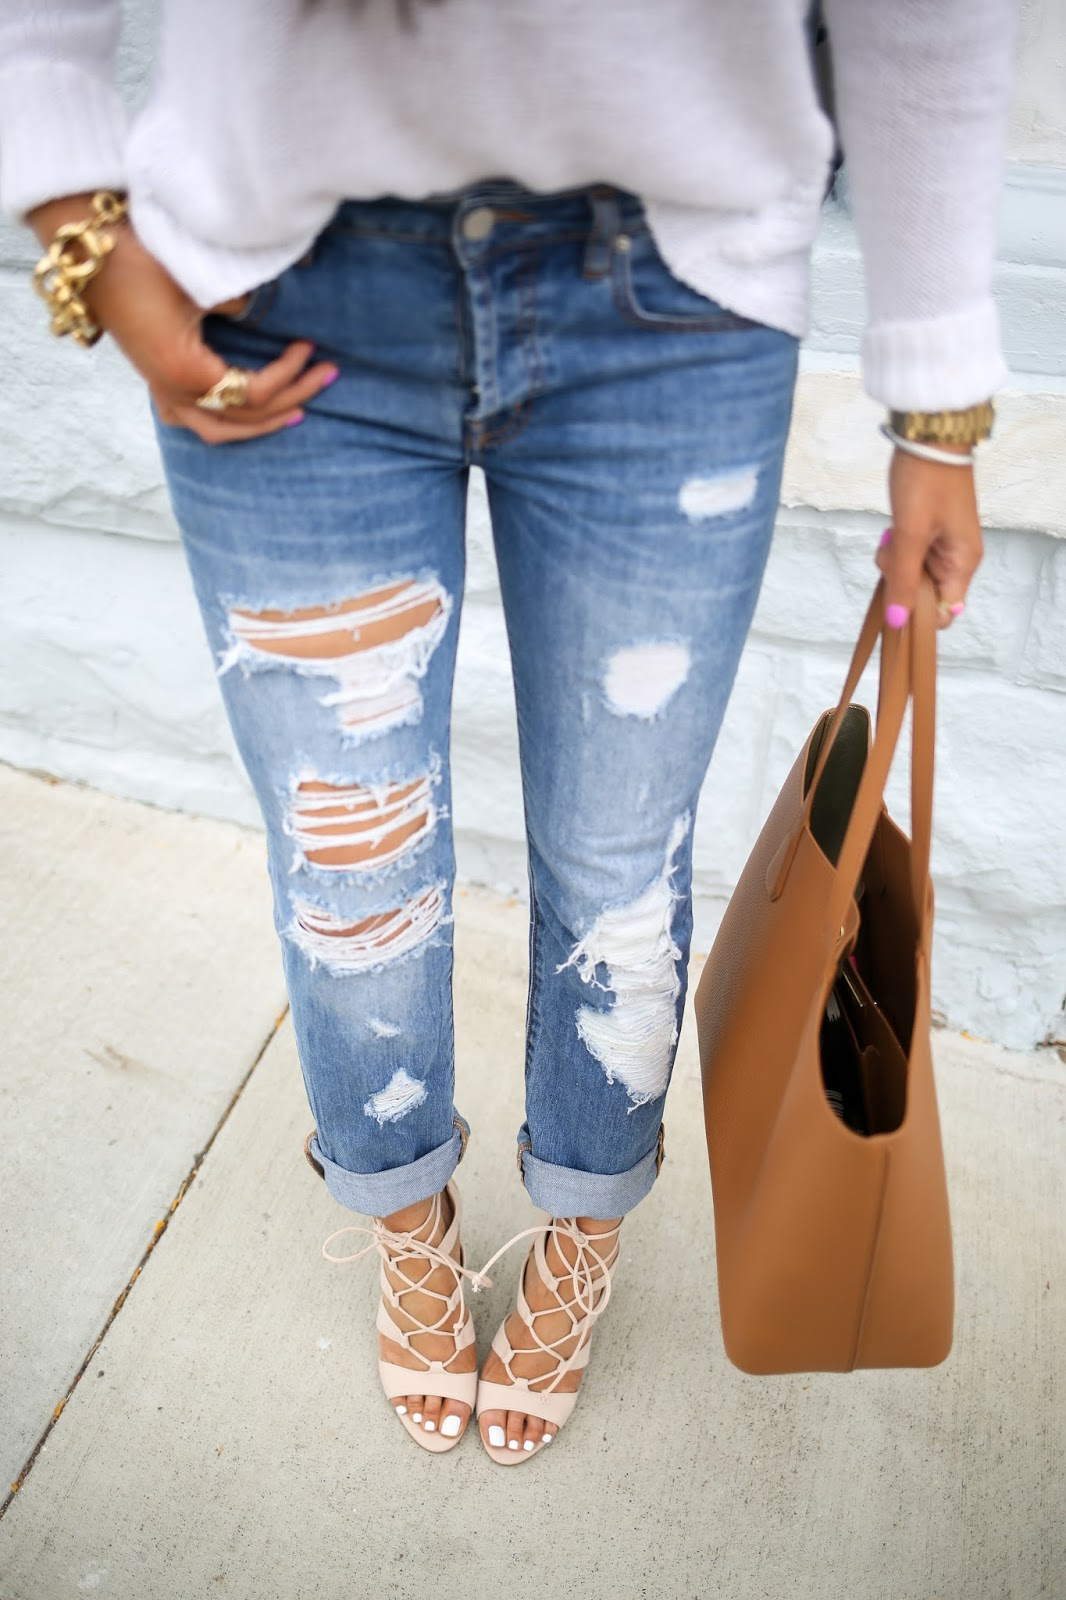 best boyfriend jeans, nasty  gal boyfriend jeans, how to style boyfriend jeans, jcrew tassel earrings, tassel earrings, tory burch perry tote, tory burch tan tote, tory burch perry bag review, emily gemma blog, the sweetest thing blog, steve madden heels, steve madden sandalia, nordstrom steve madden heels, michael kors large jet set watch, oversized monogram necklace, huge monogram necklace, 2.5 inch monogram necklace, strappy blush heels, brunette balayage hair pinterest, summer fashion pinterest, spring fashion pinterest, summer outfit ideas pinterest, pinterest easy summer outfit ideas women, boyfriend jeans outfit ideas pinterest, kendra scott rings, the mill san francisco, prada retro sunglasses, prada sunglasses with gold bar, distressed ripped boyfriend jeans